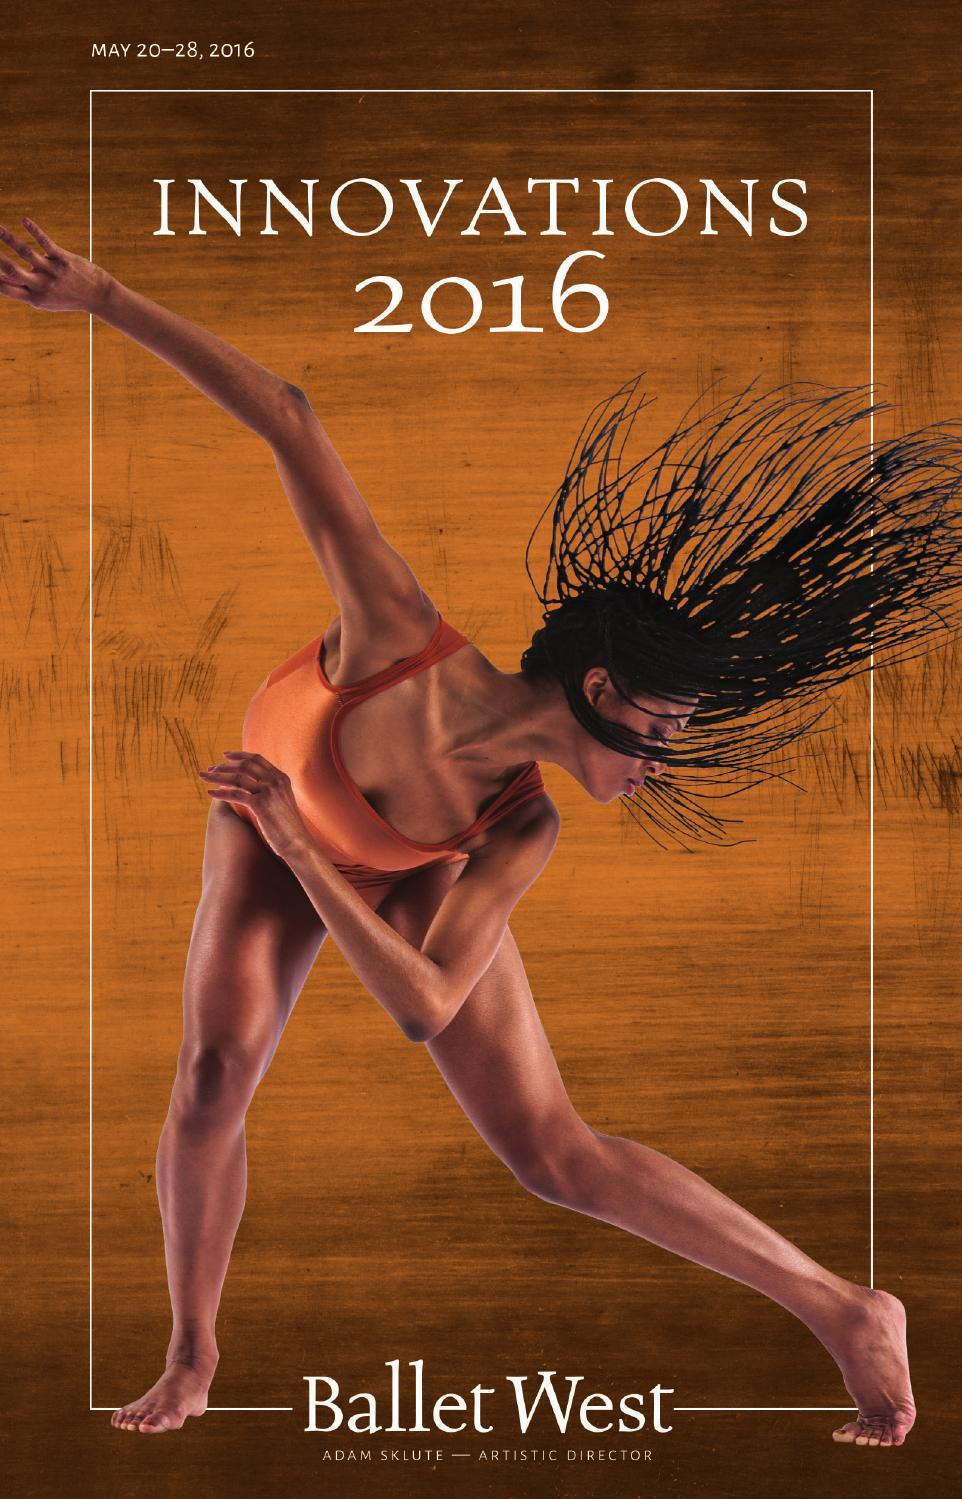 annual report 2013 2014 by ballet west issuu innovations 2016